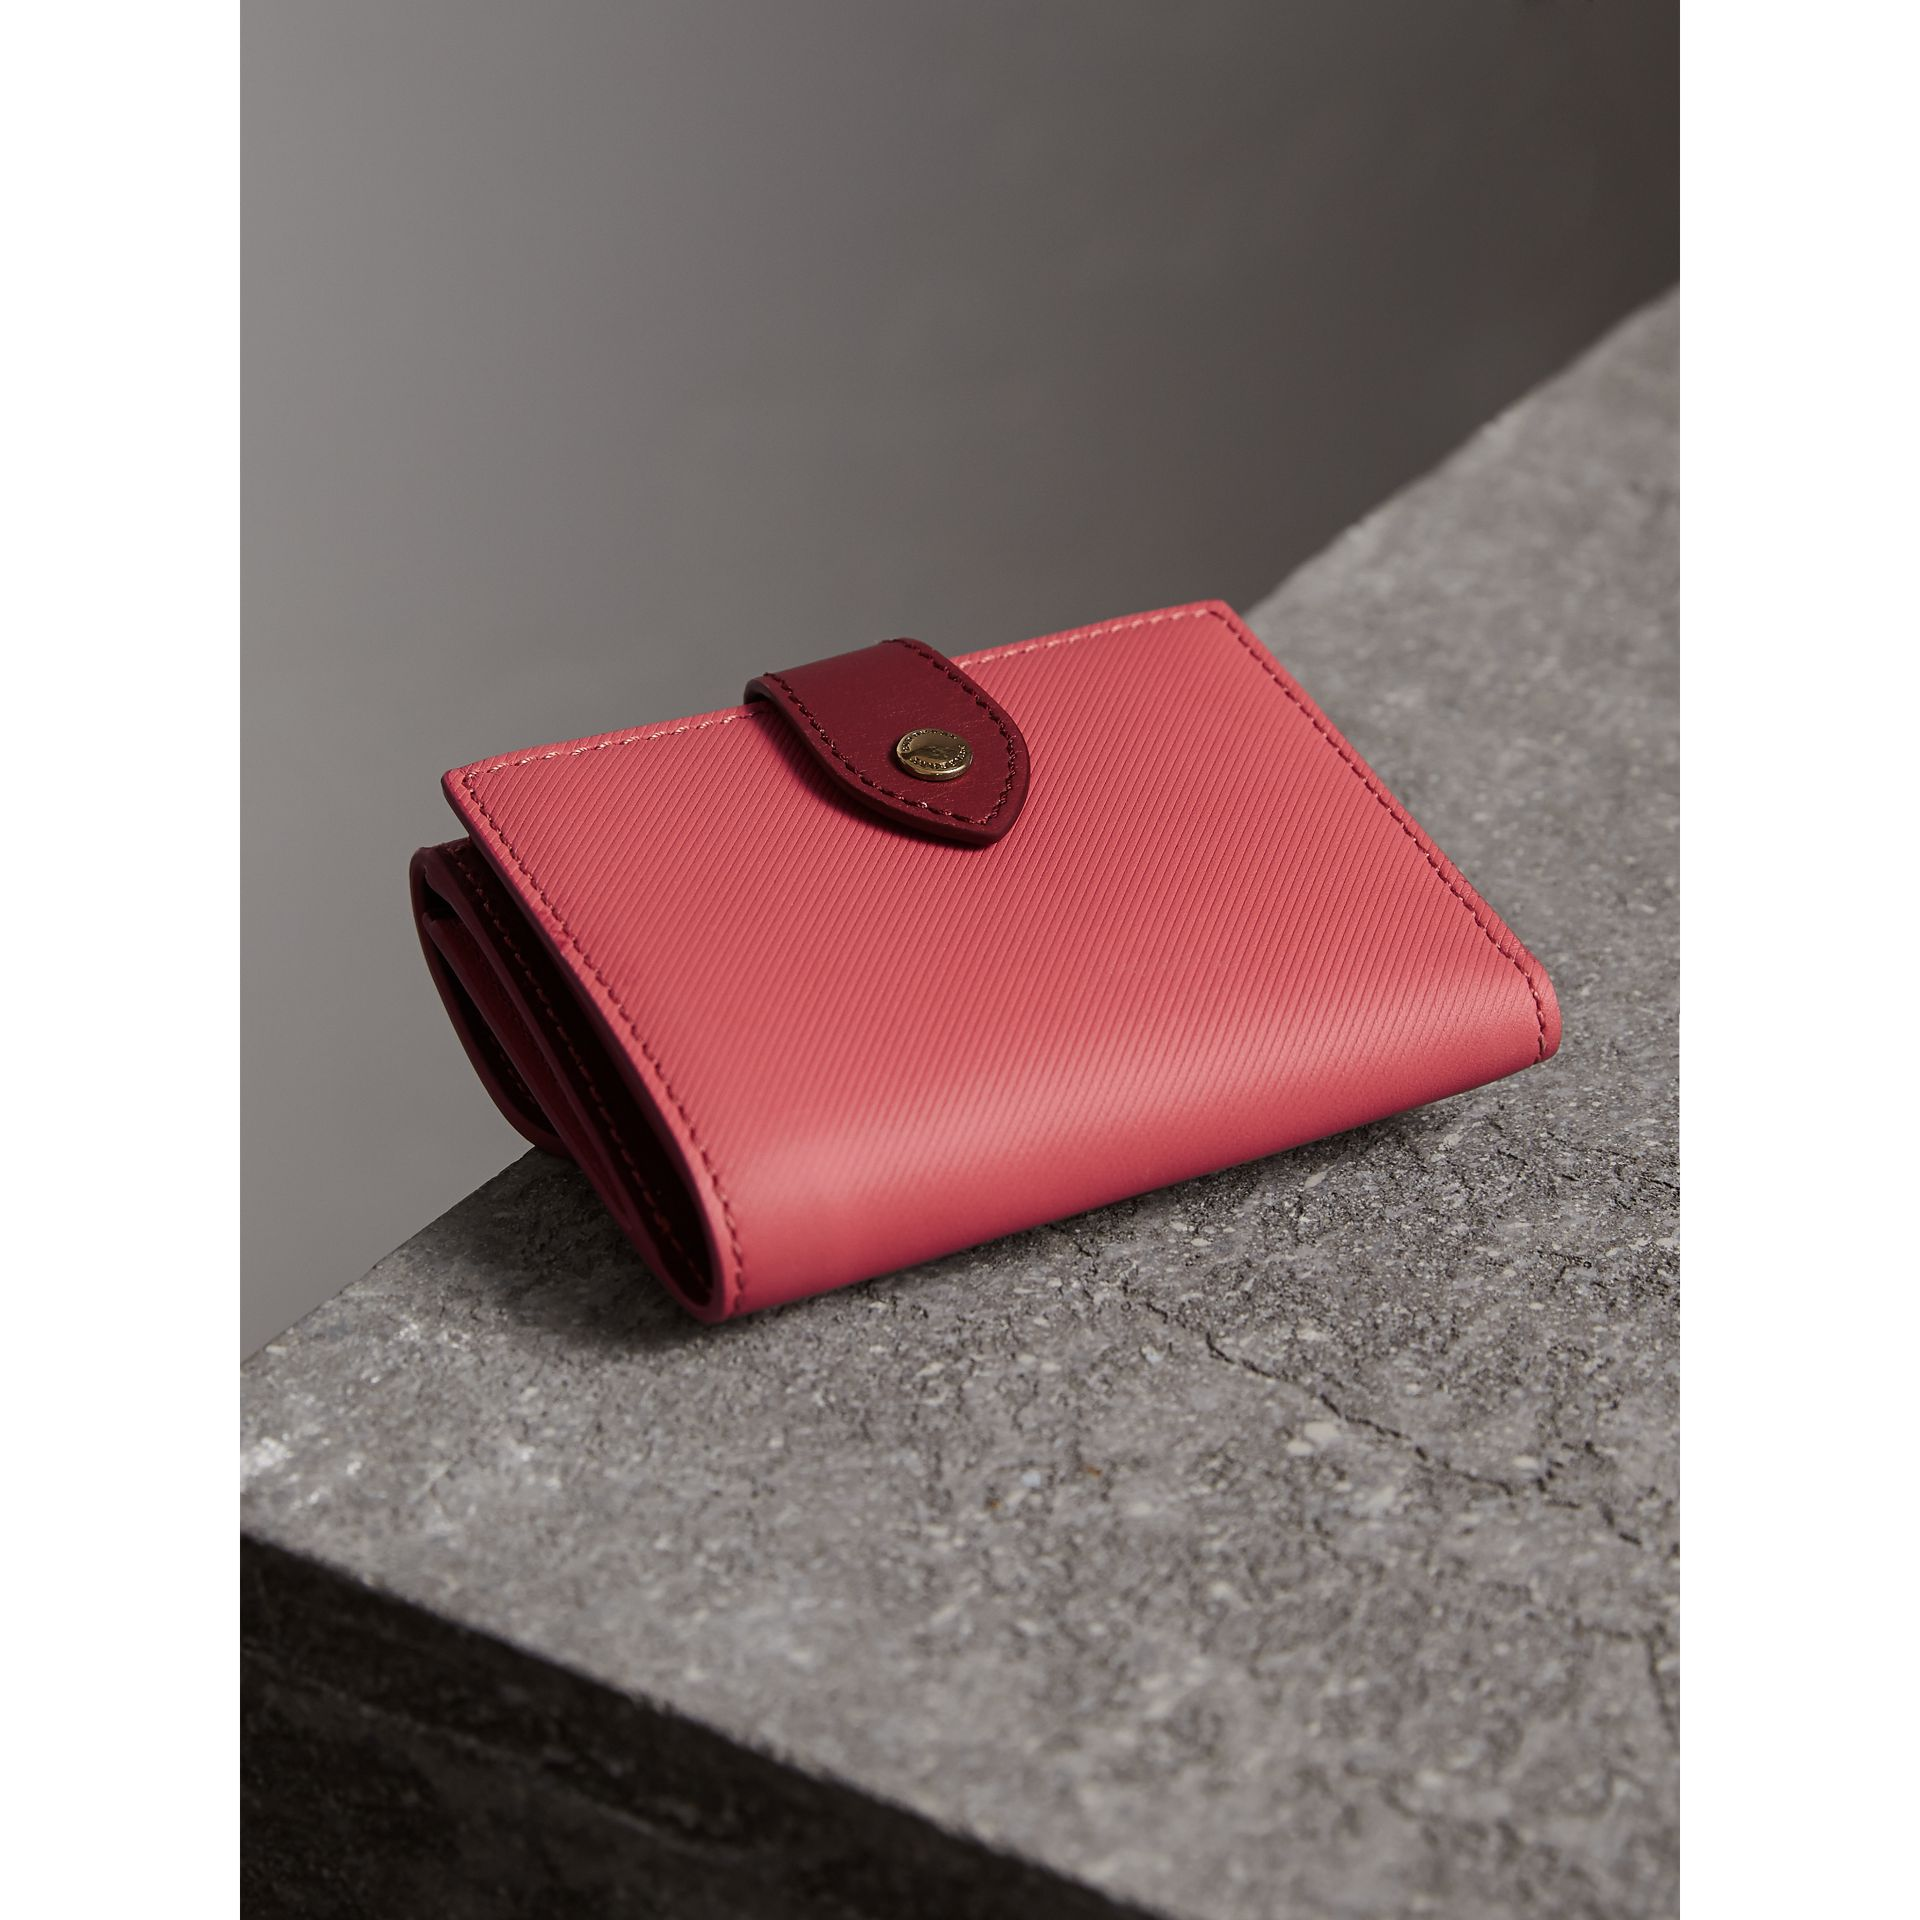 Two-tone Trench Leather Wallet in Blossom Pink/ Antique Red - Women | Burberry - gallery image 2